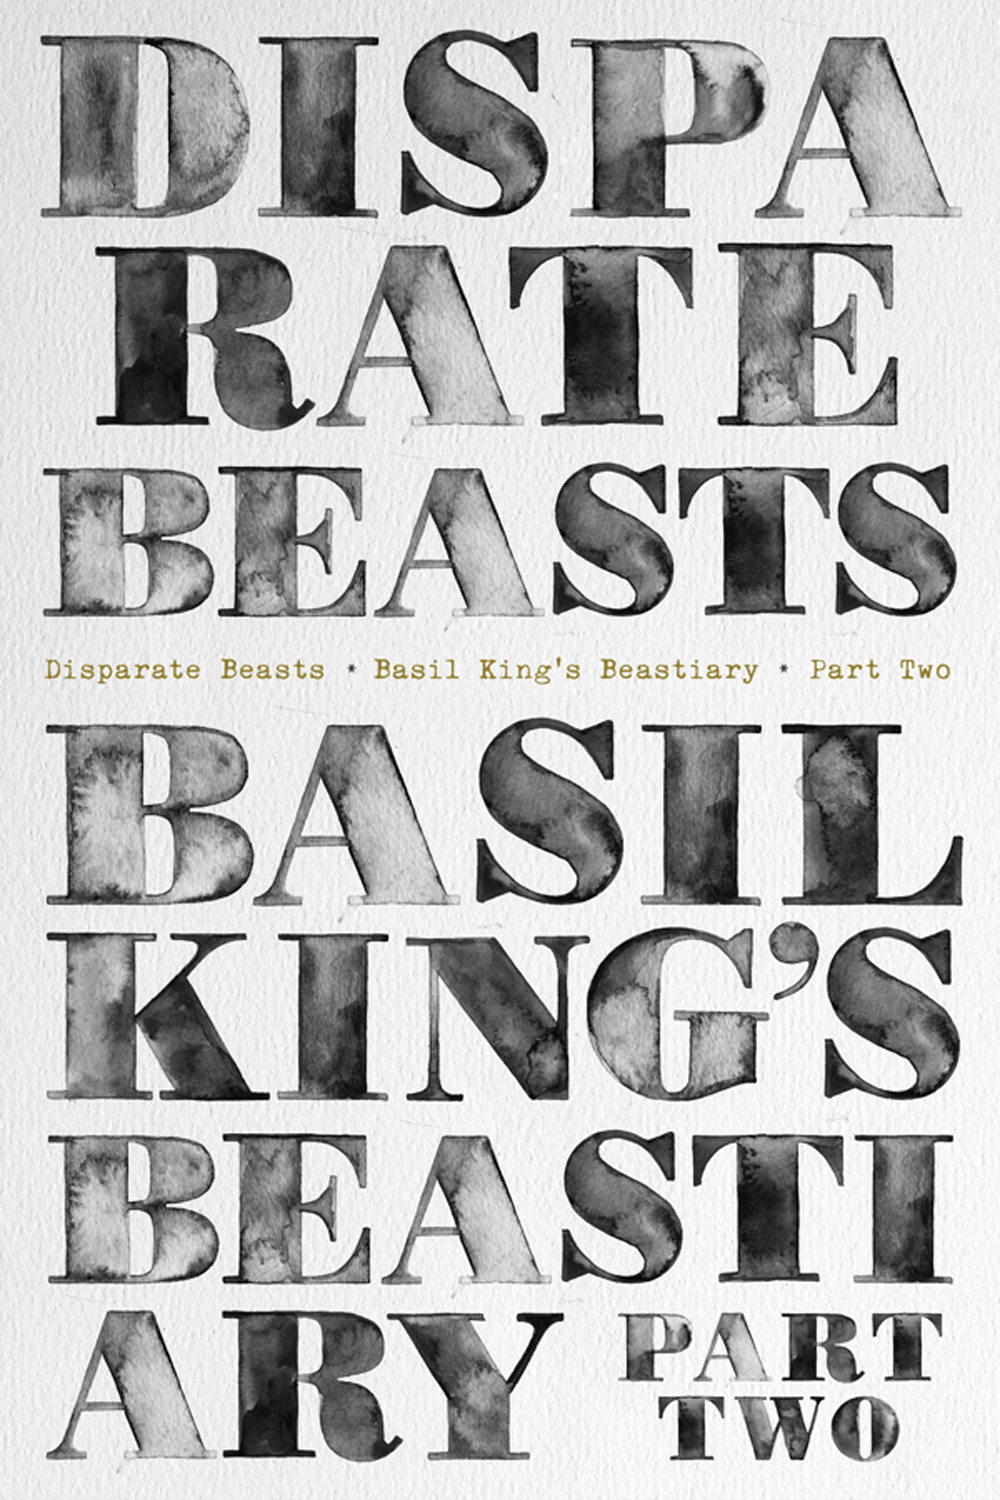 Disparate Beasts: Basil King's Beastiary, Part Two